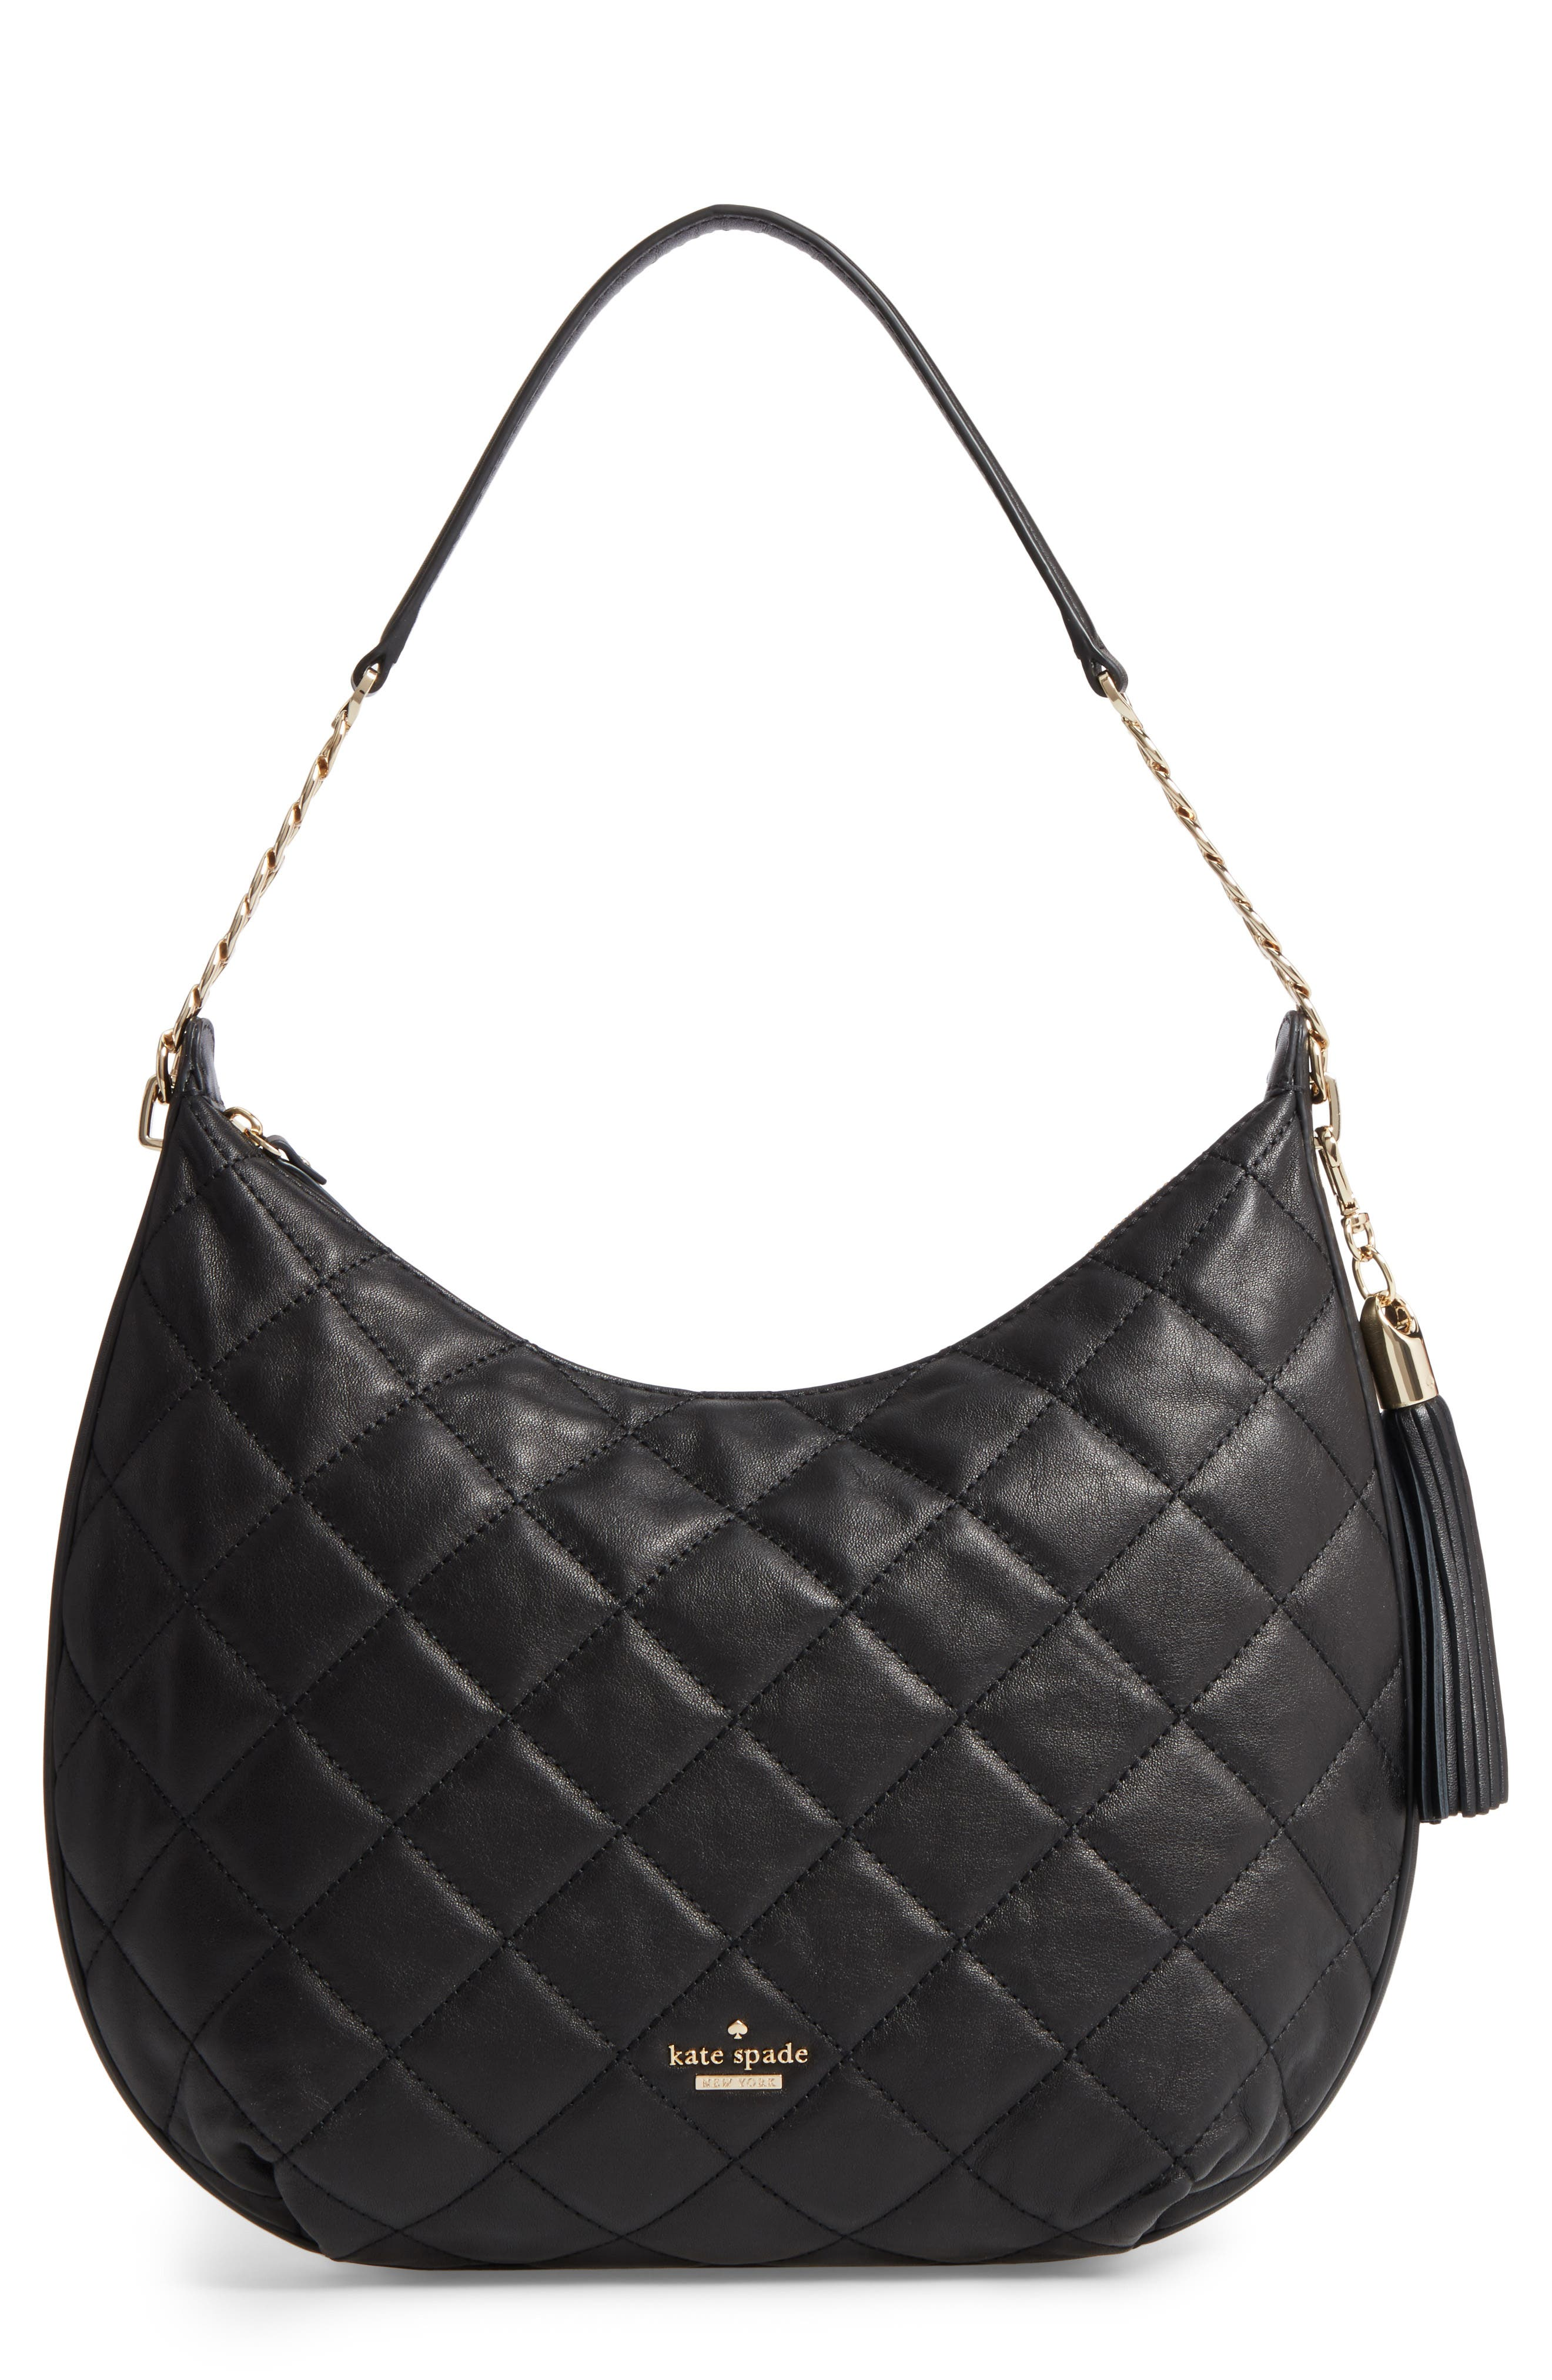 kate spade new york emerson place - tamsin leather hobo